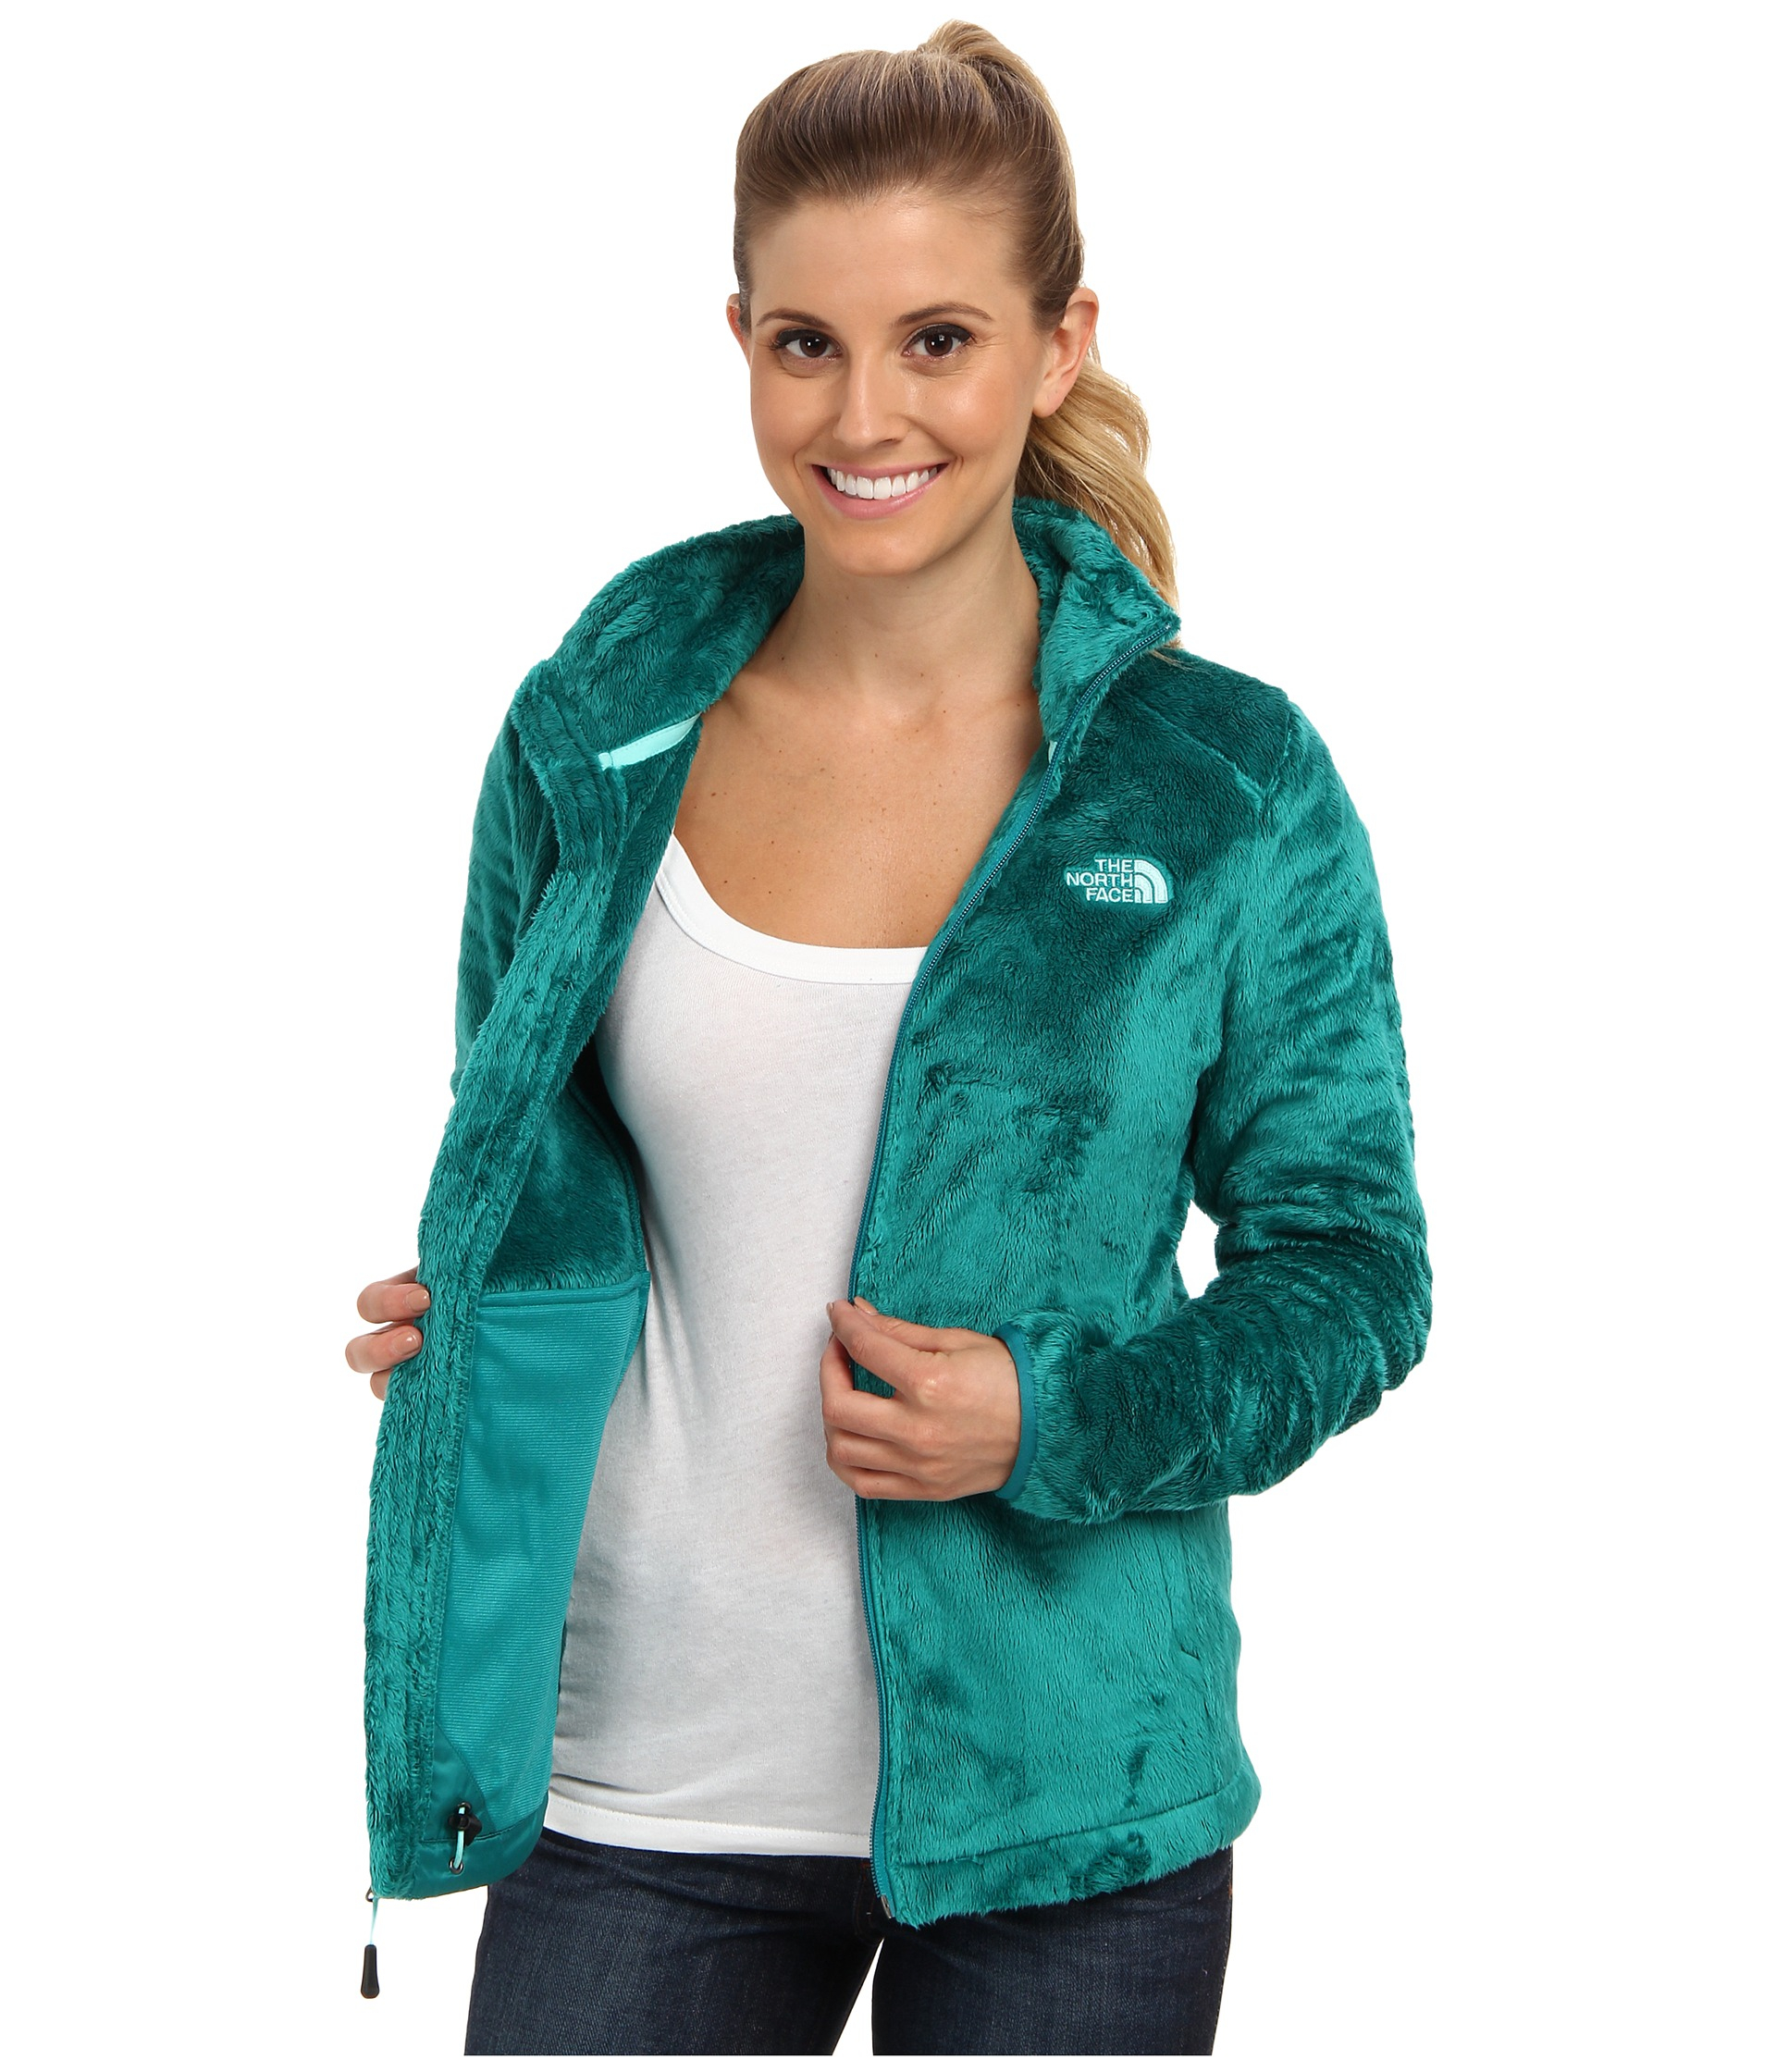 Lyst - The North Face Osito 2 Jacket in Green fabd1cf54